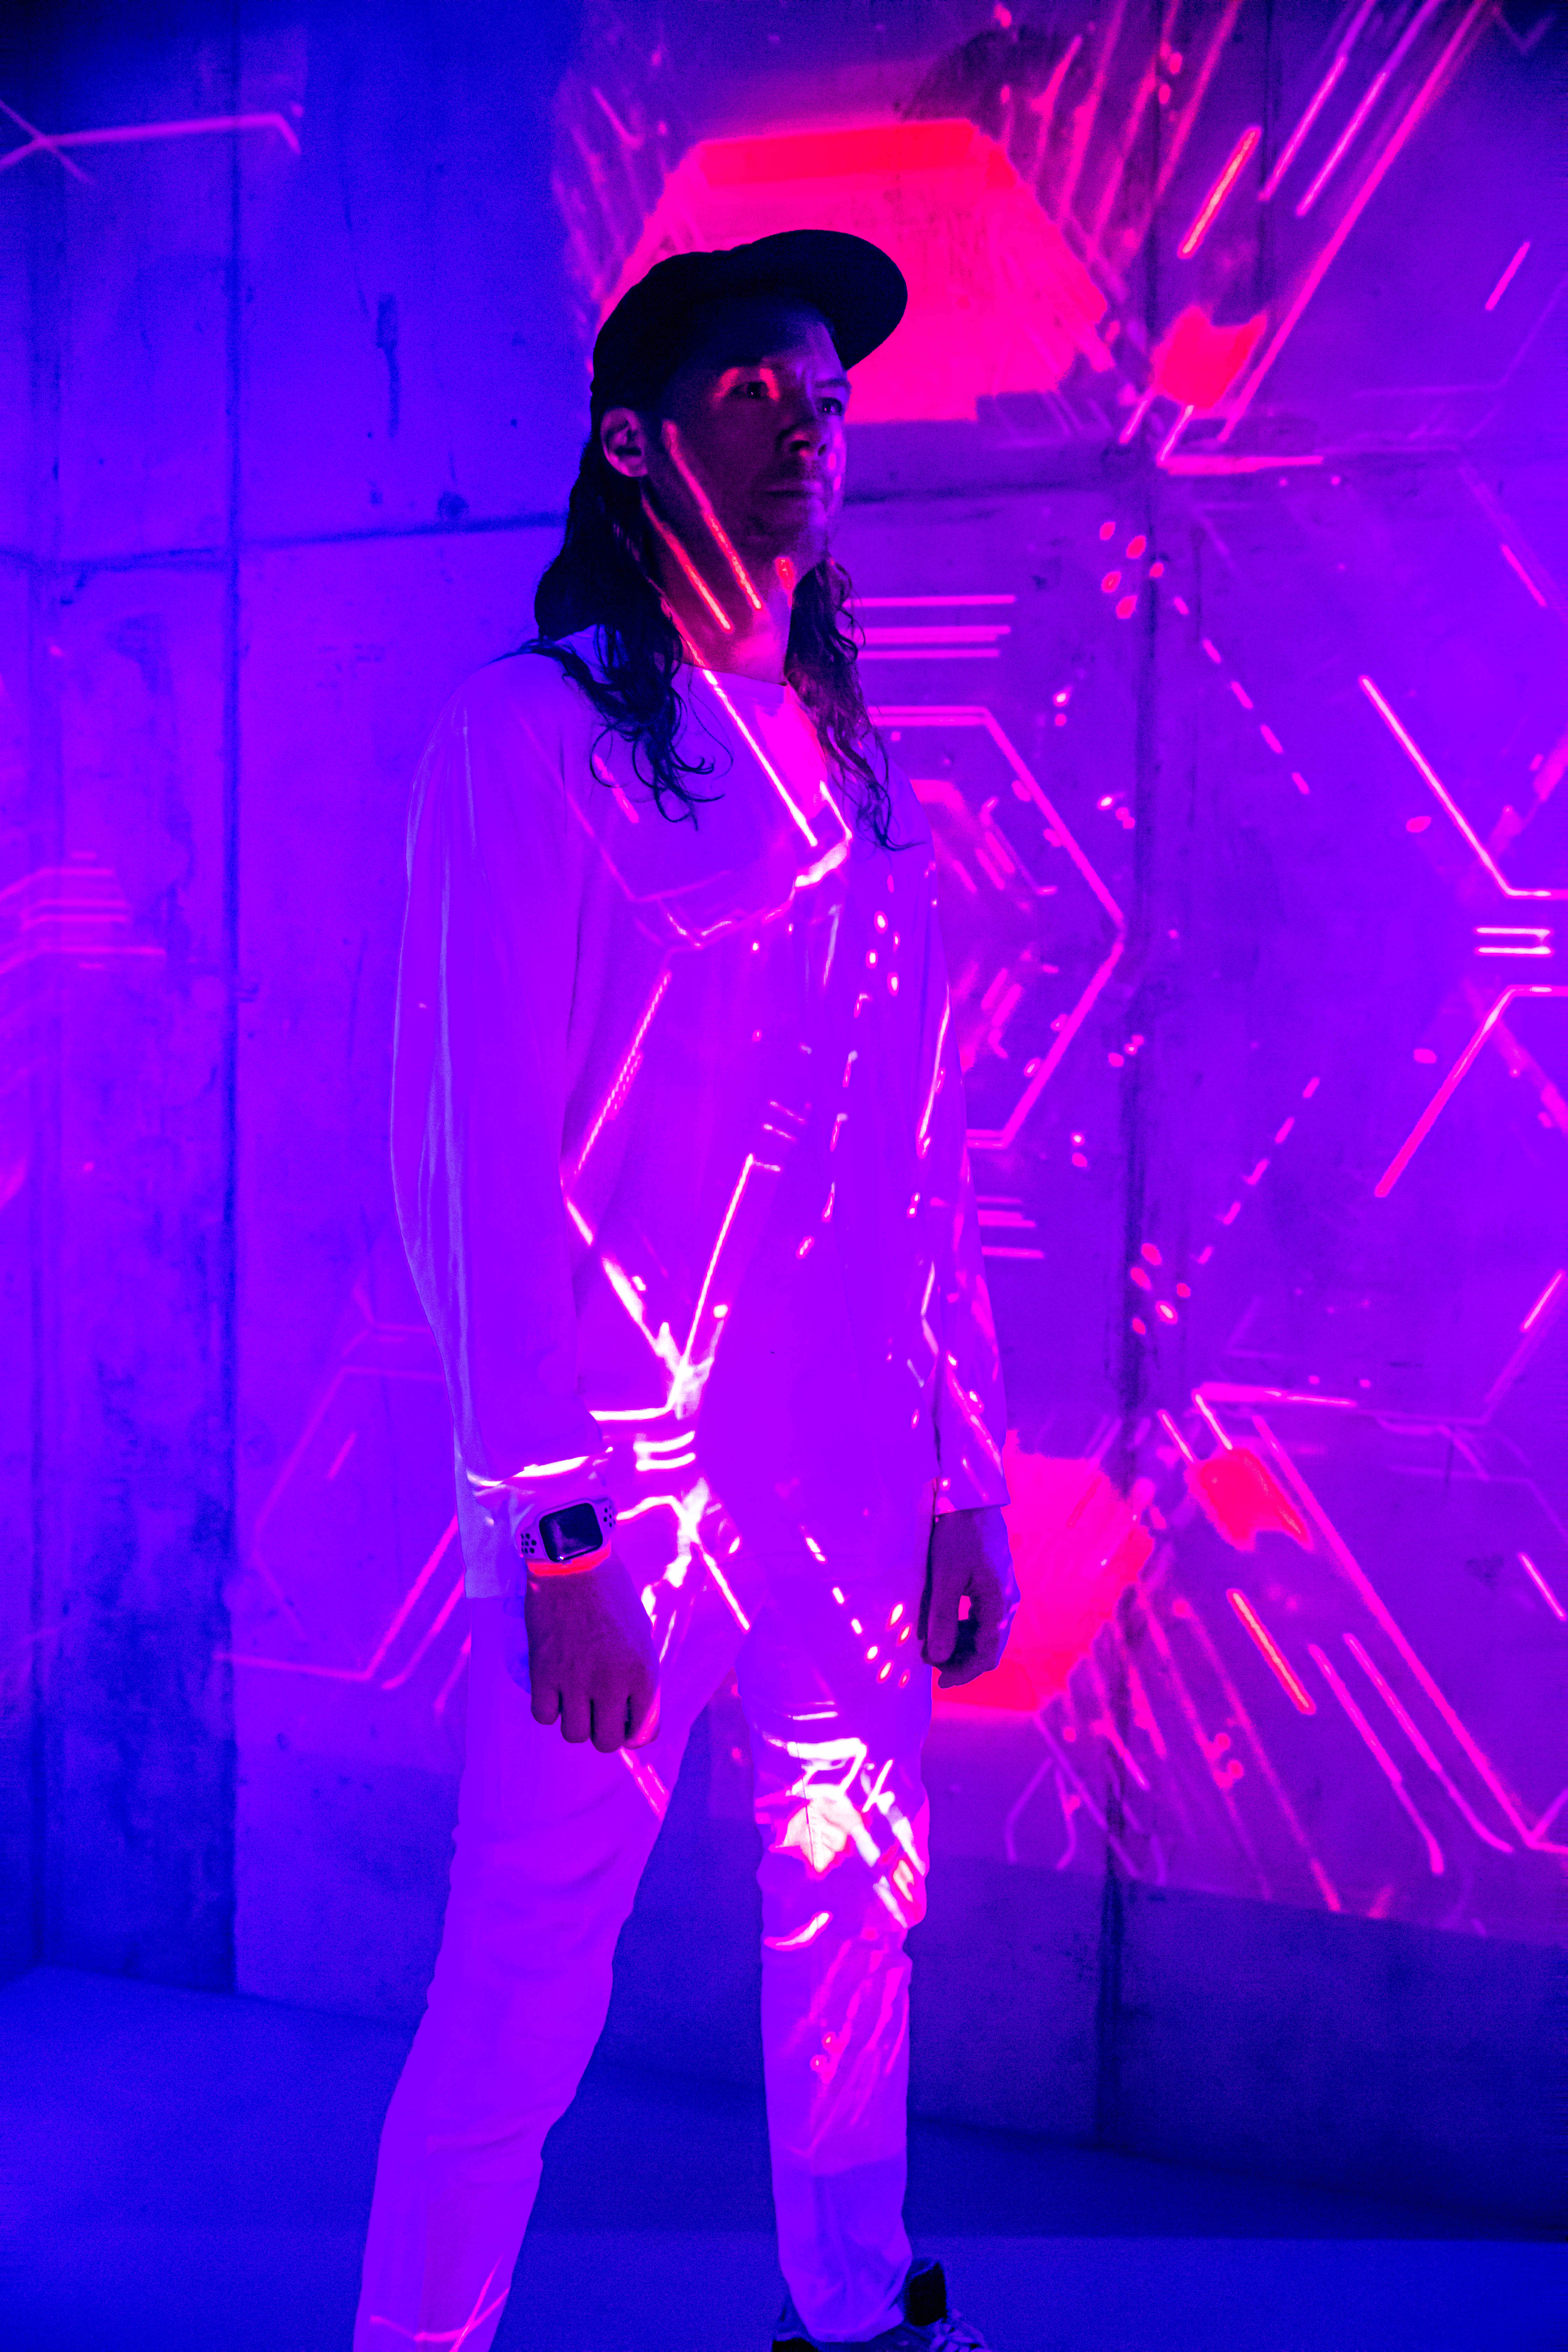 Immersive Experience, Lighting Design & Introduction to Projection Mapping by Paul Mortimore - art in London